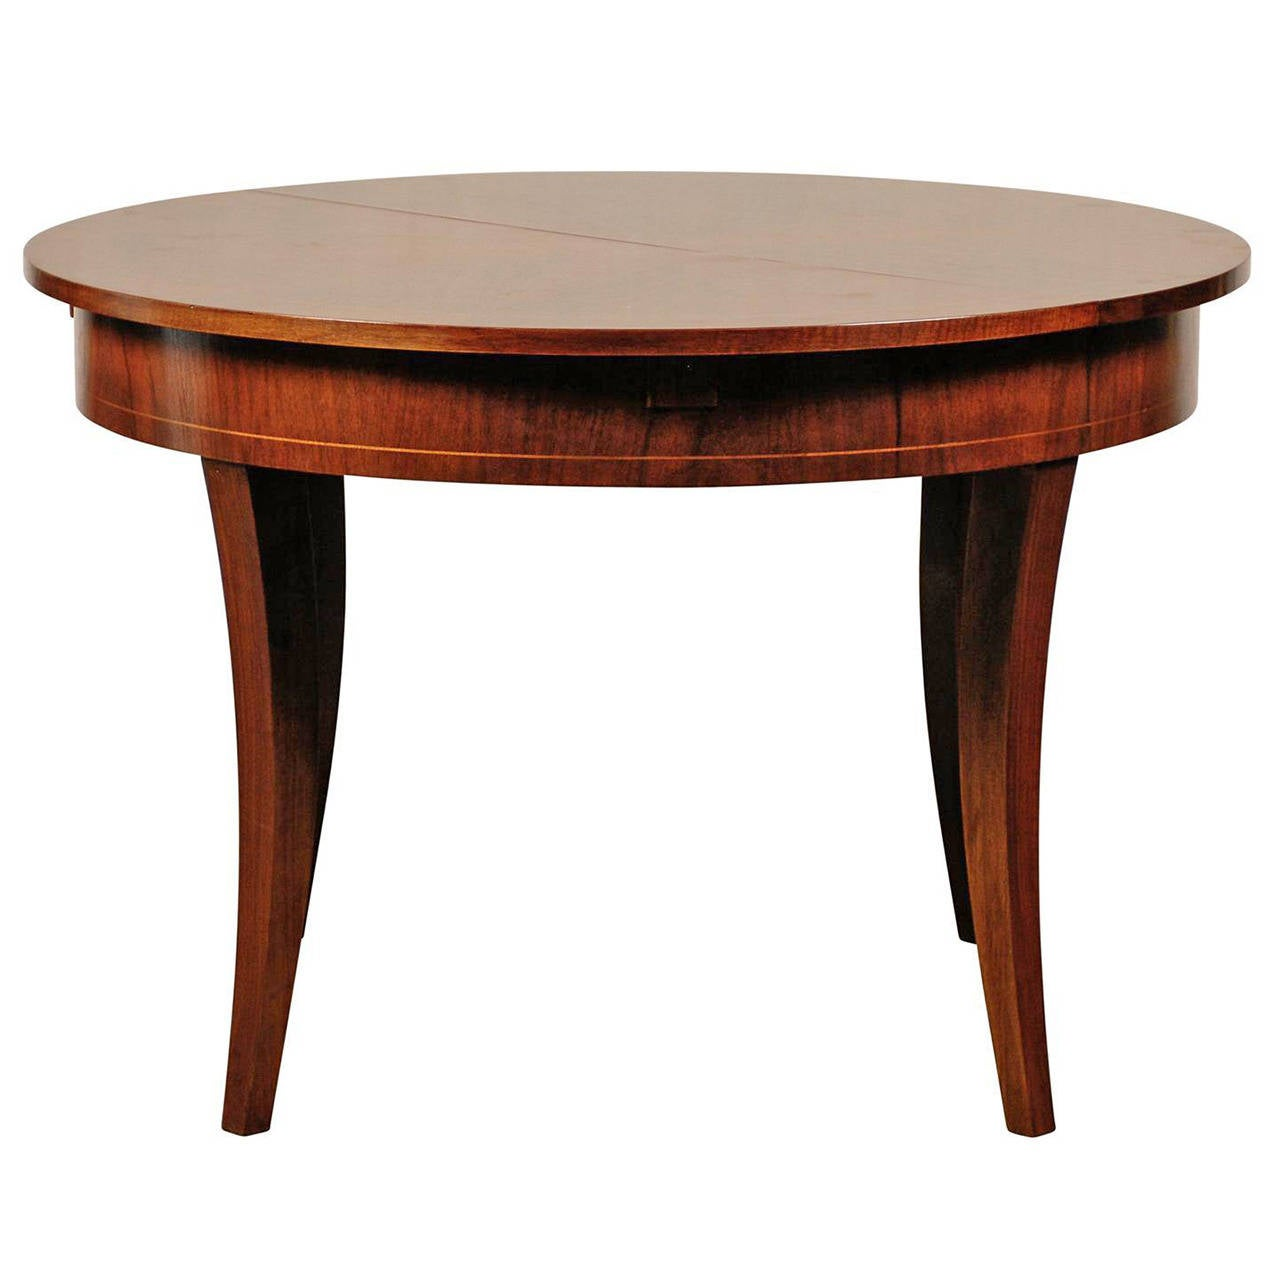 AUSTRIAN STYLE ROUND WALNUT EXTENSION DINING TABLE For Sale At 1stdibs